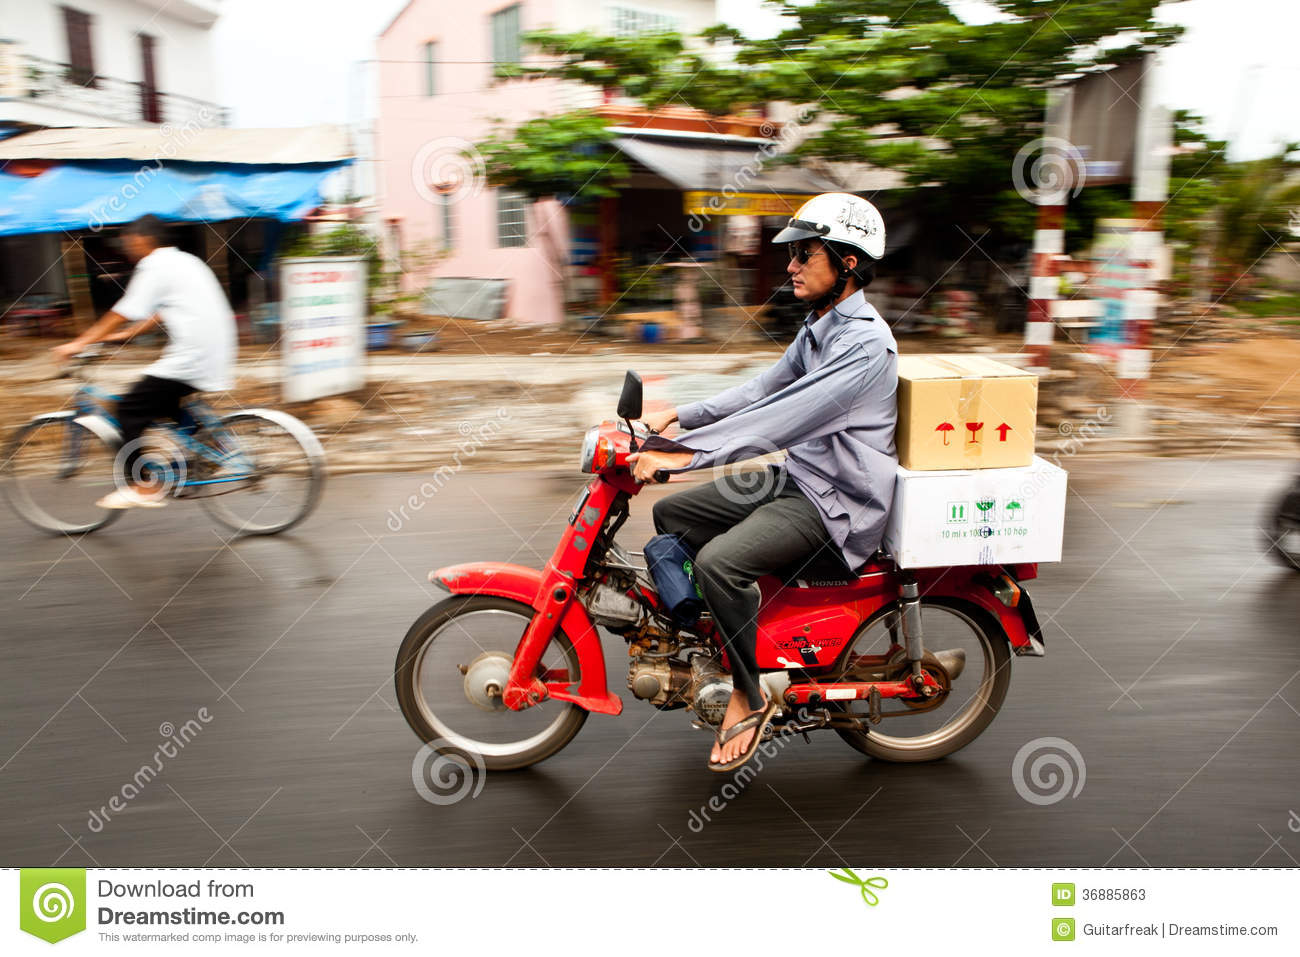 Download Motorino vietnamita fotografia stock editoriale. Immagine di cestini - 36885863